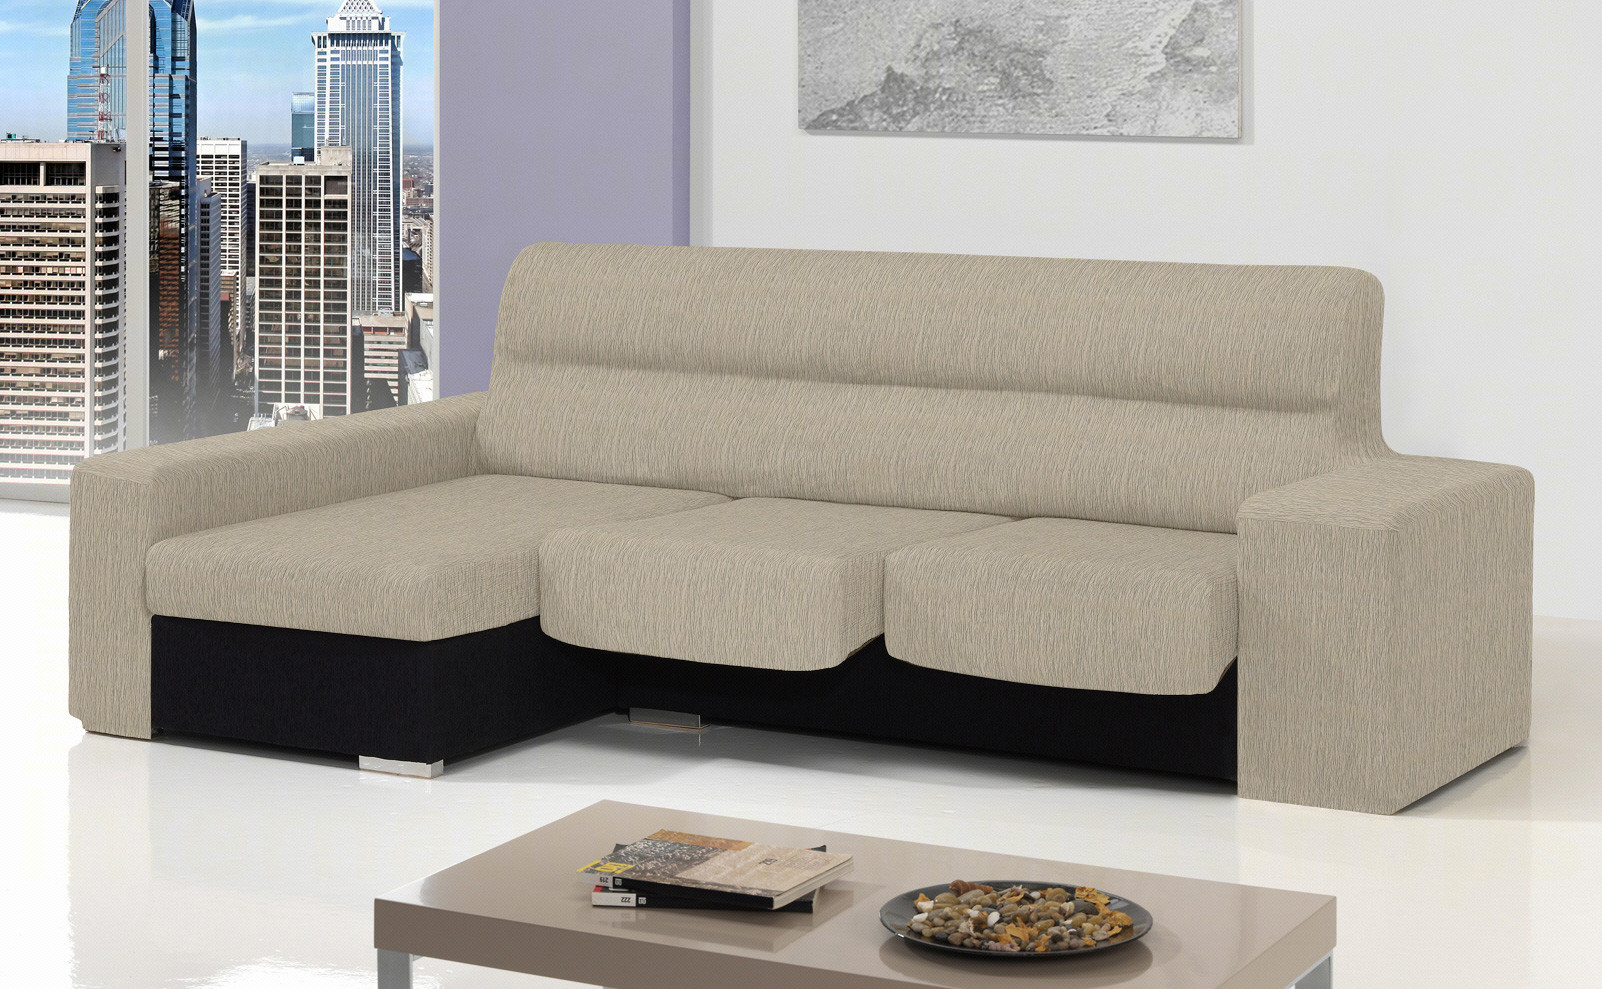 Fundas De sofa Chaise Longue Lujo Funda De sofá Chaise Longue Capri De Home Of 42  Brillante Fundas De sofa Chaise Longue